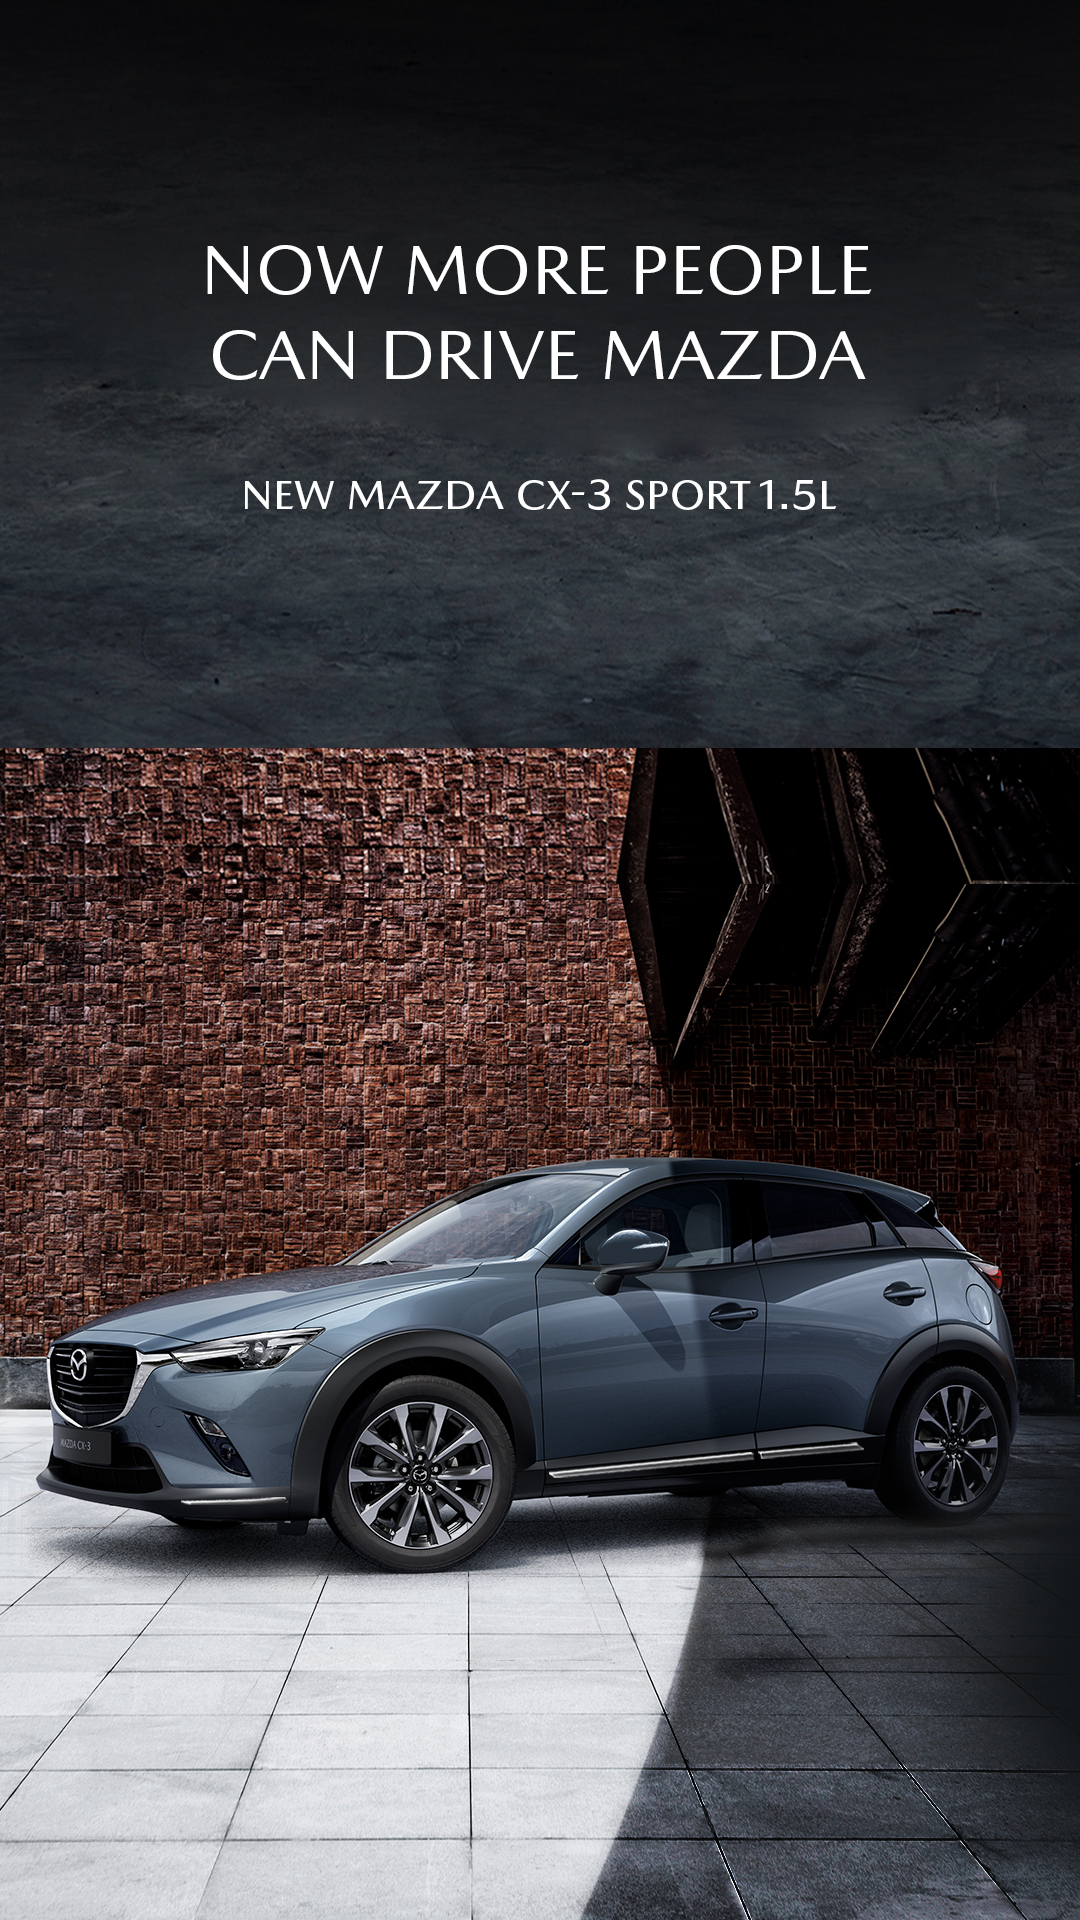 IIMS Virtual Phase 2 Hadirkan Langsung Launching New Mazda CX-3 Sport 1.5L